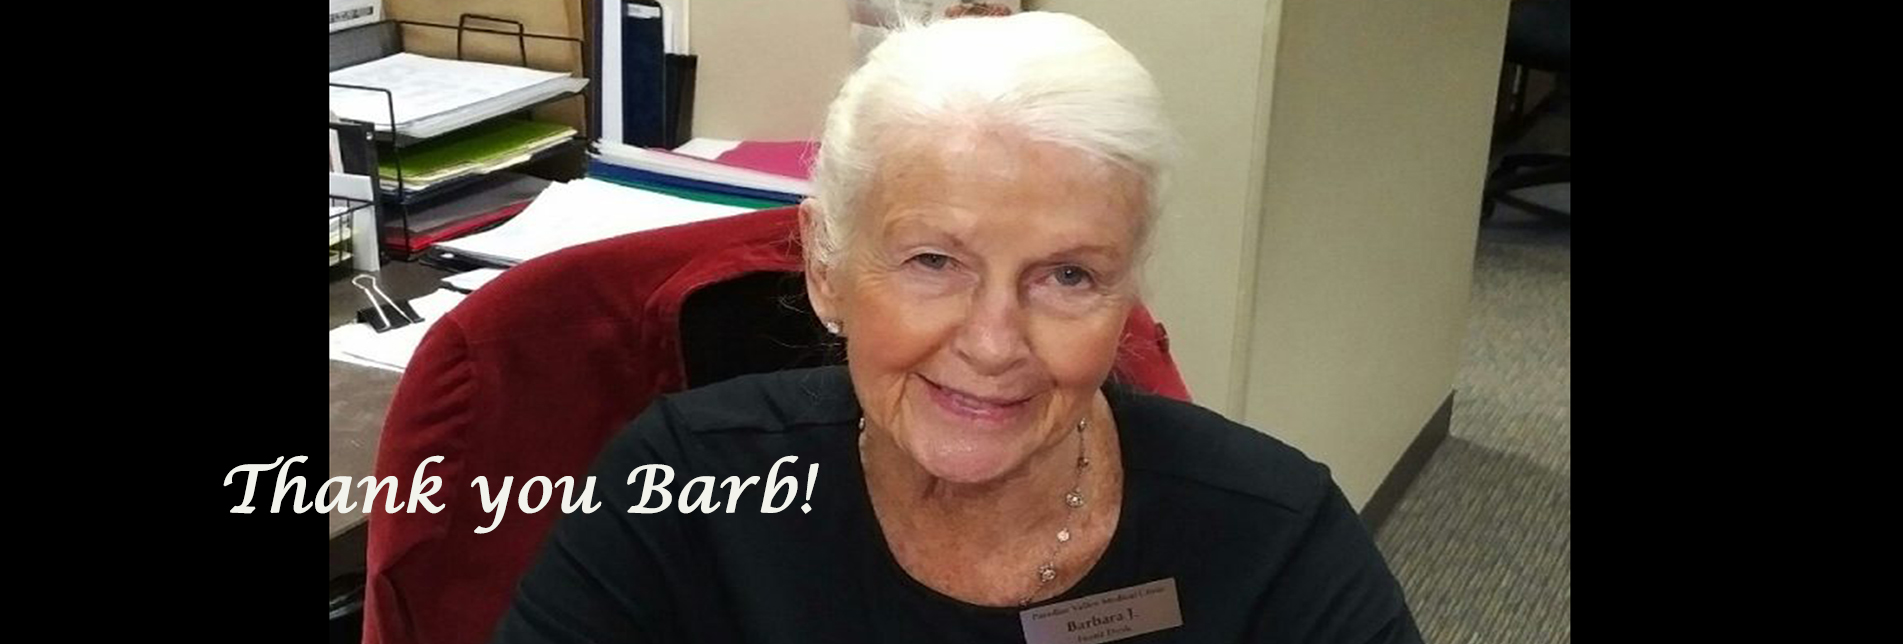 OUR BARBARA HAS LEFT THE BUILDING......